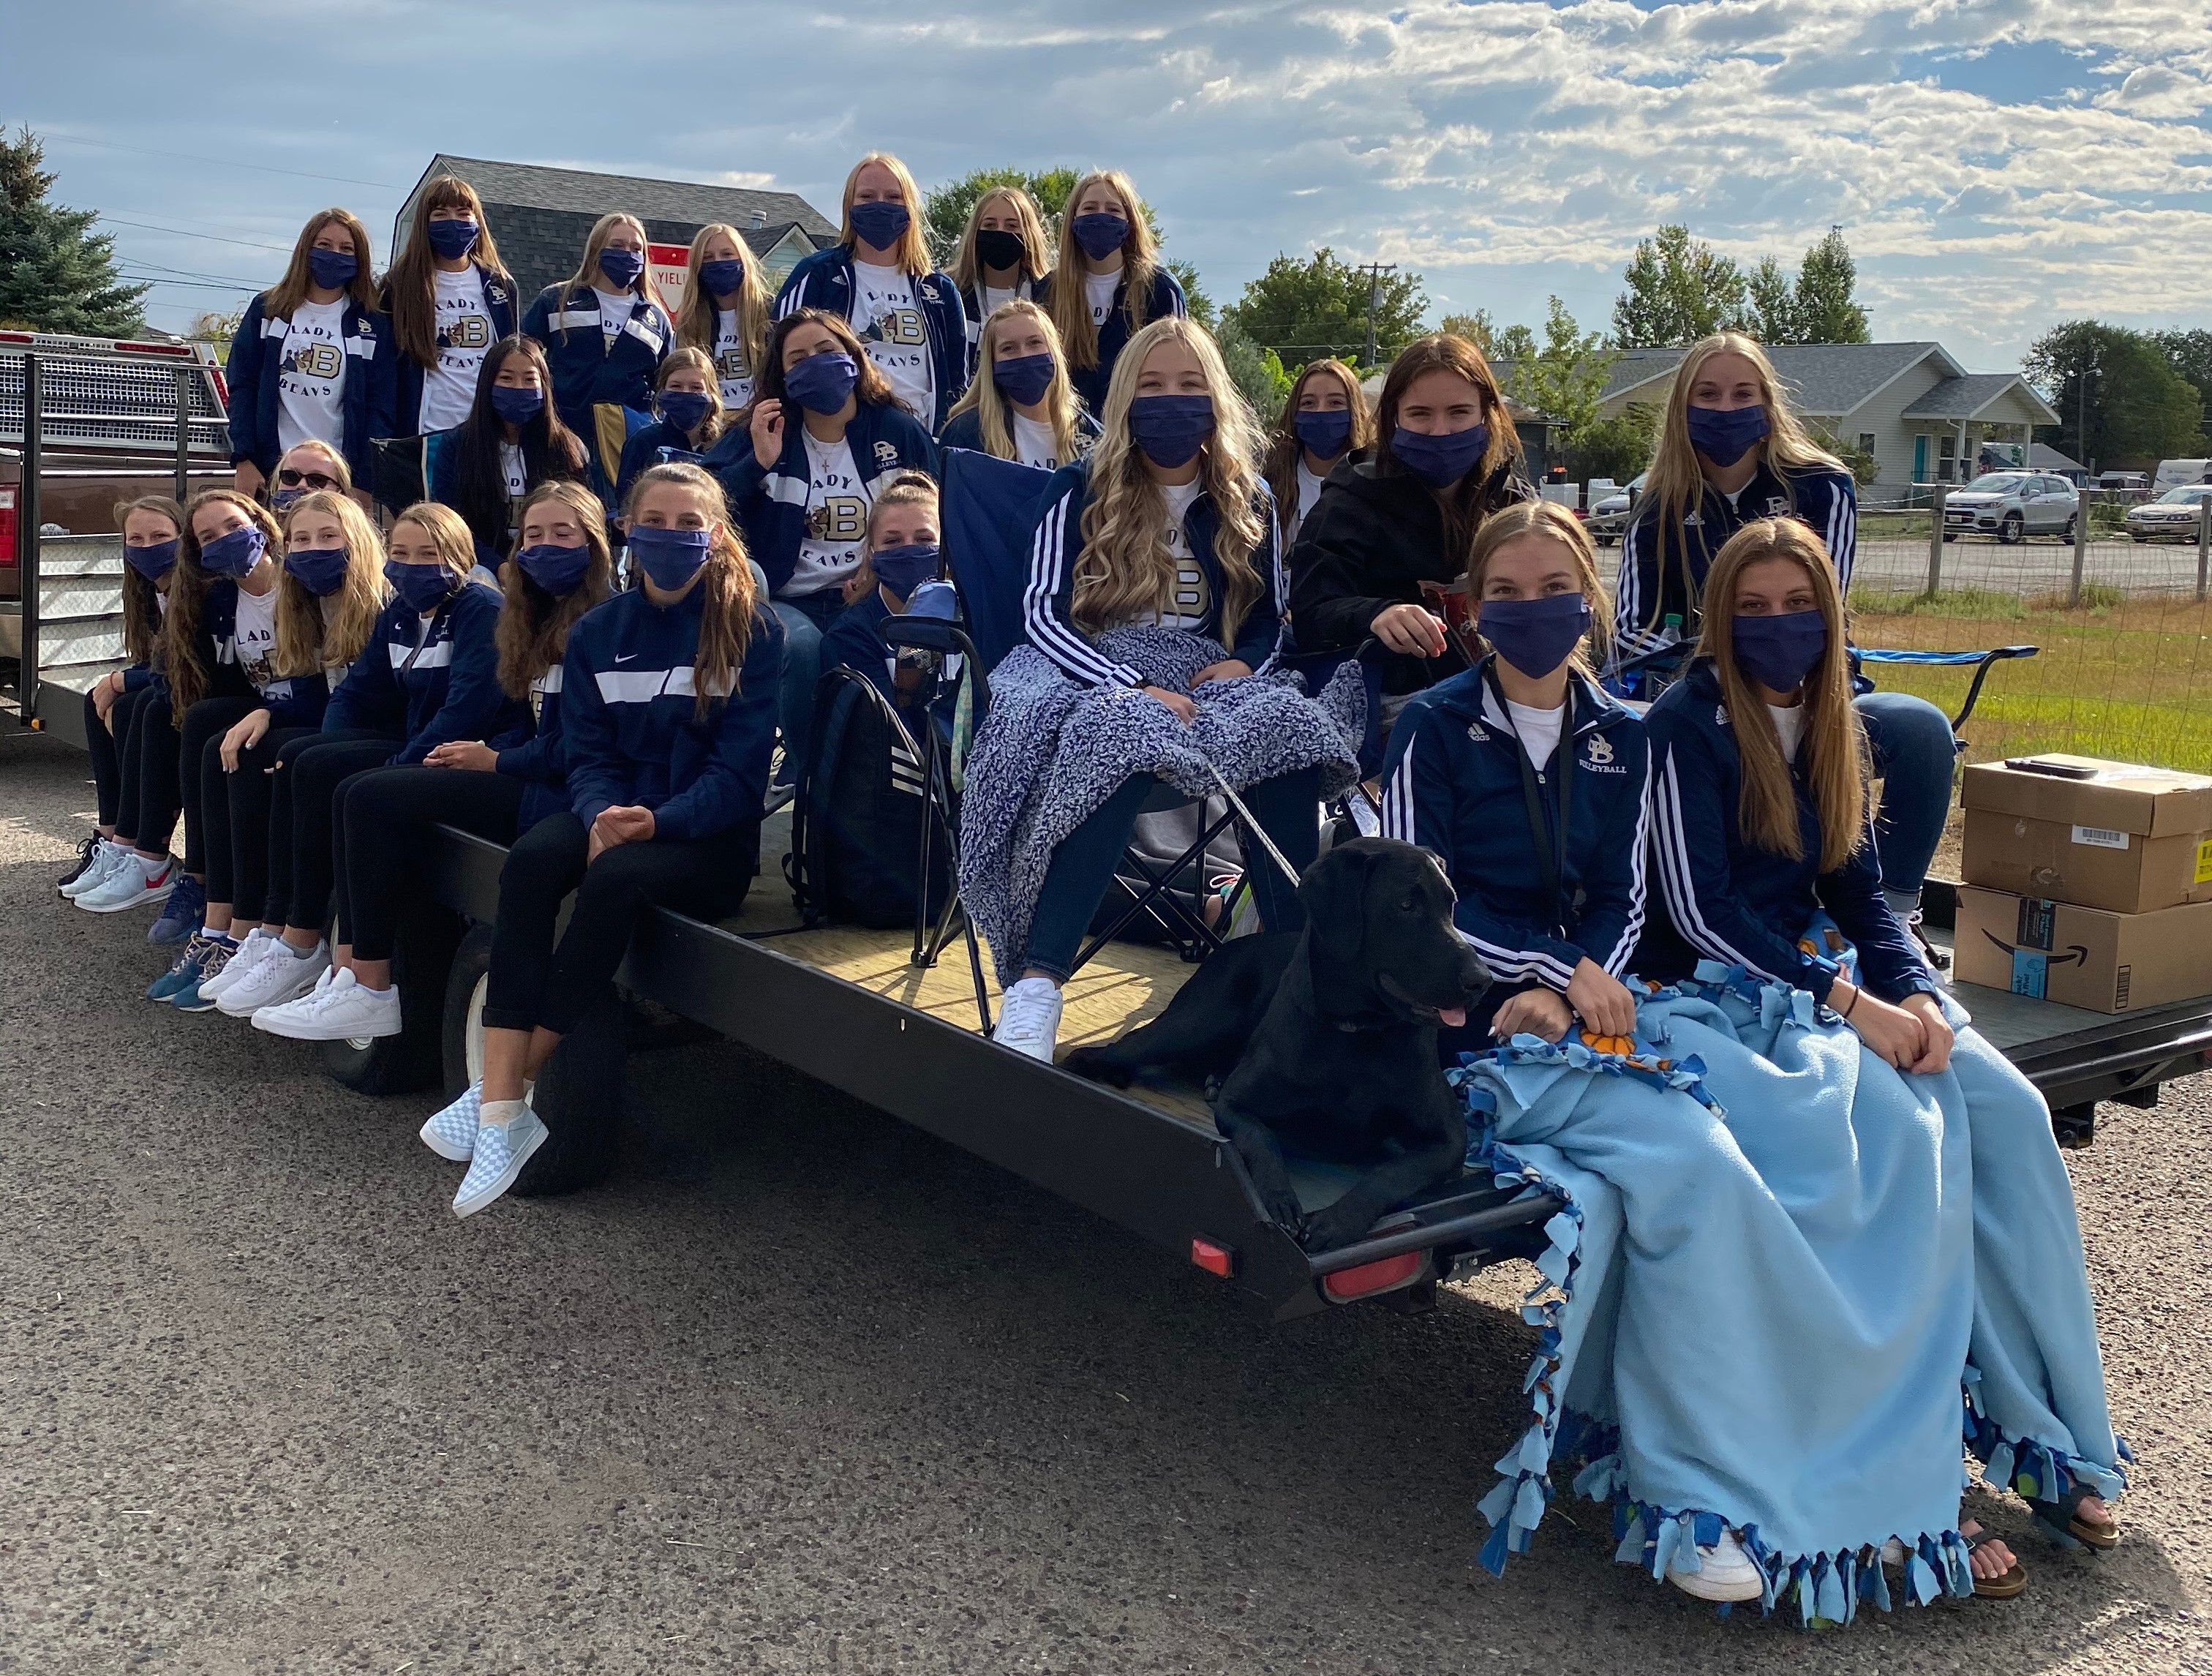 Volleyball team on the back of a truck